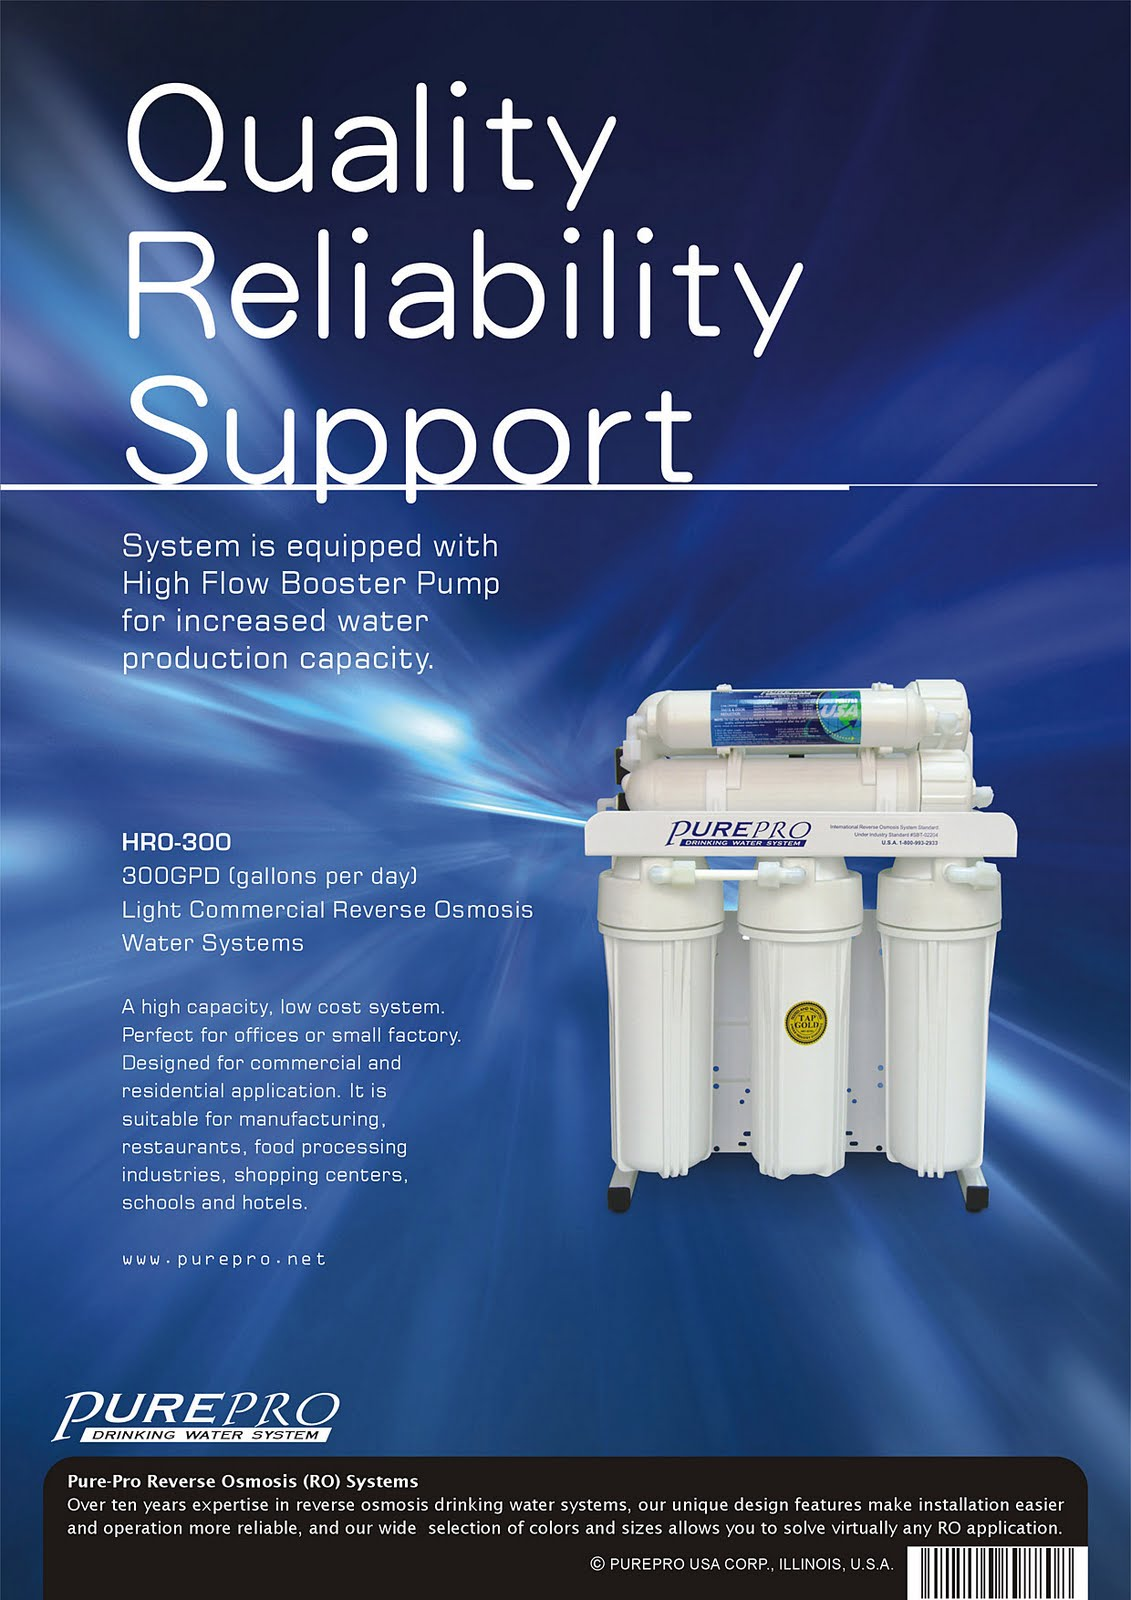 PurePro® HRO300 Light Commercial Reverse Osmosis Water System